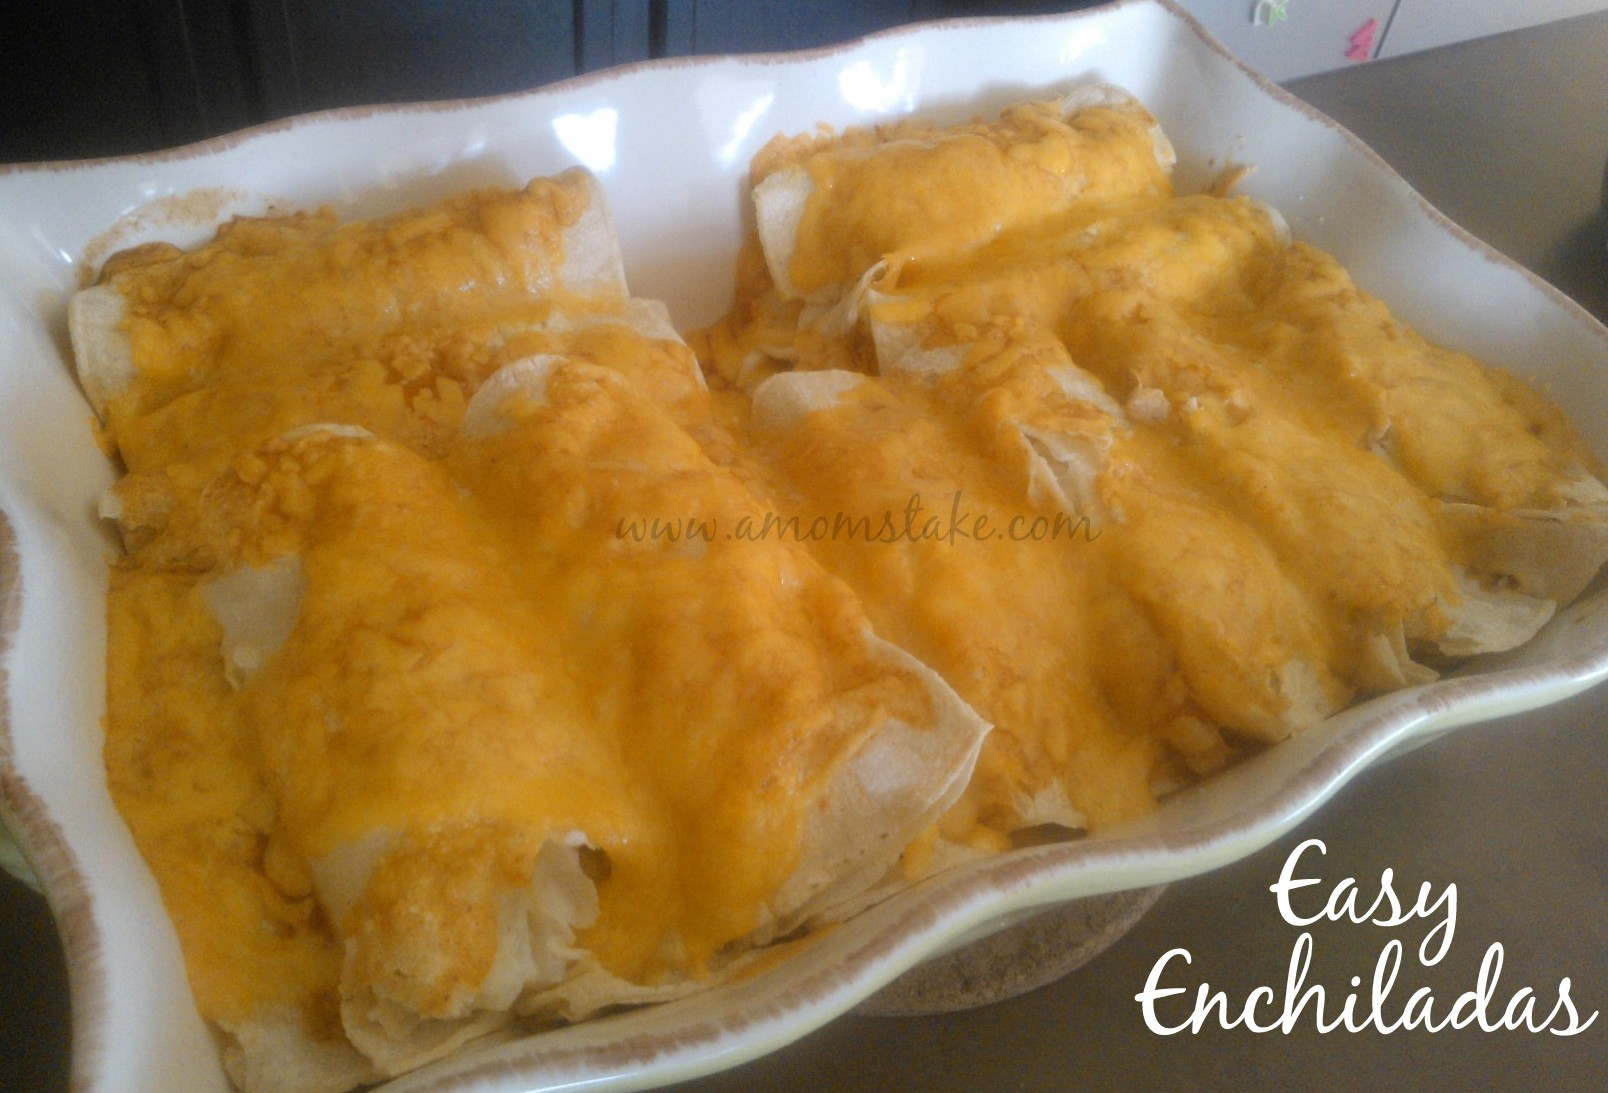 Easy dinner recipes chicken enchilada recipe a mom 39 s take for Easy things to make for dinner for two